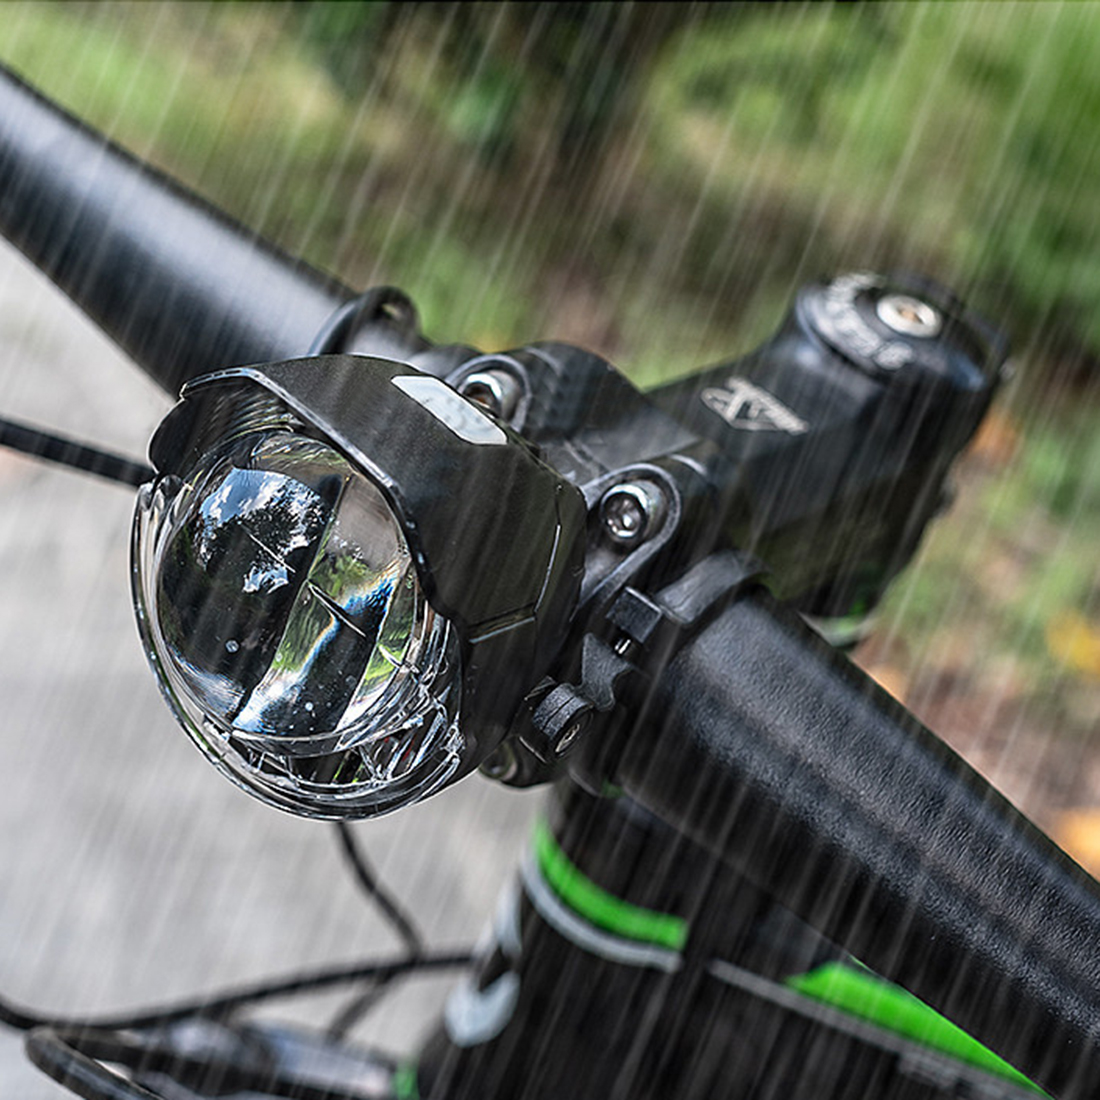 Leadbike LD28 USB Rechargeable T6 LED Bicycle Anti-glare Headlight 750LMs IP4 Waterproof 3 Modes Front Light